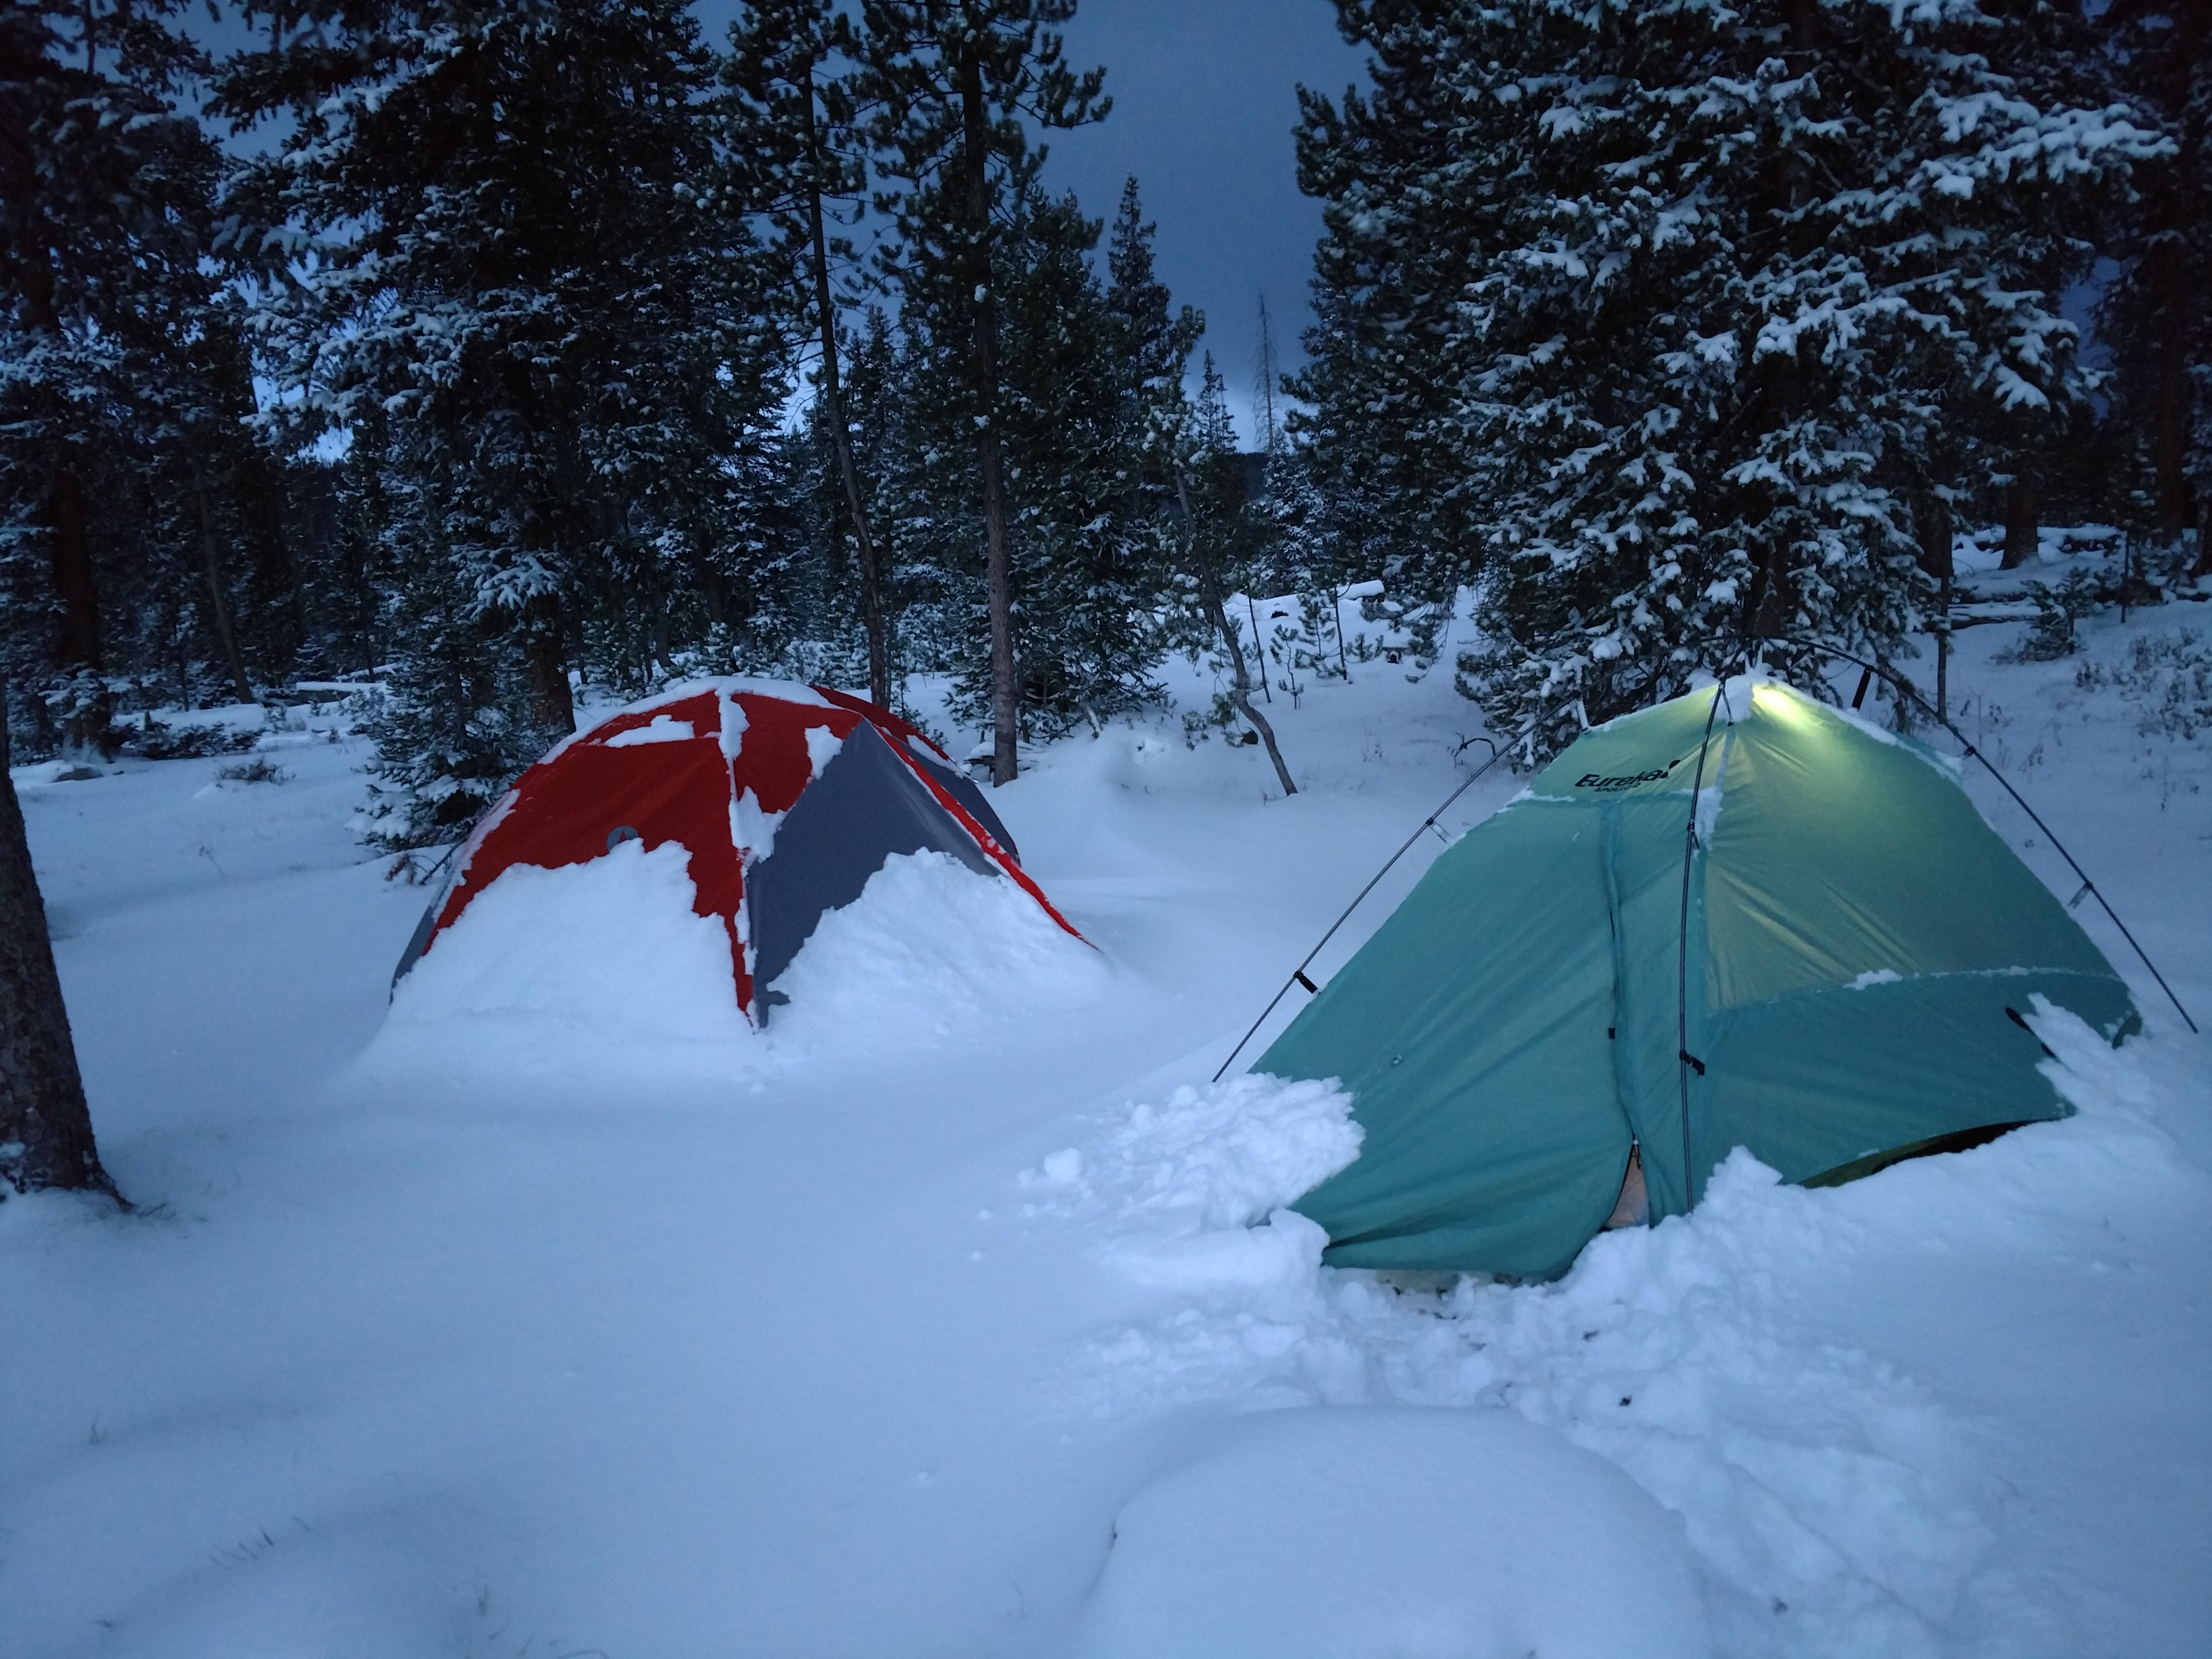 A little Colorado backcountry camping during second rifle!  We were hit by a snowstorm and had to move out.